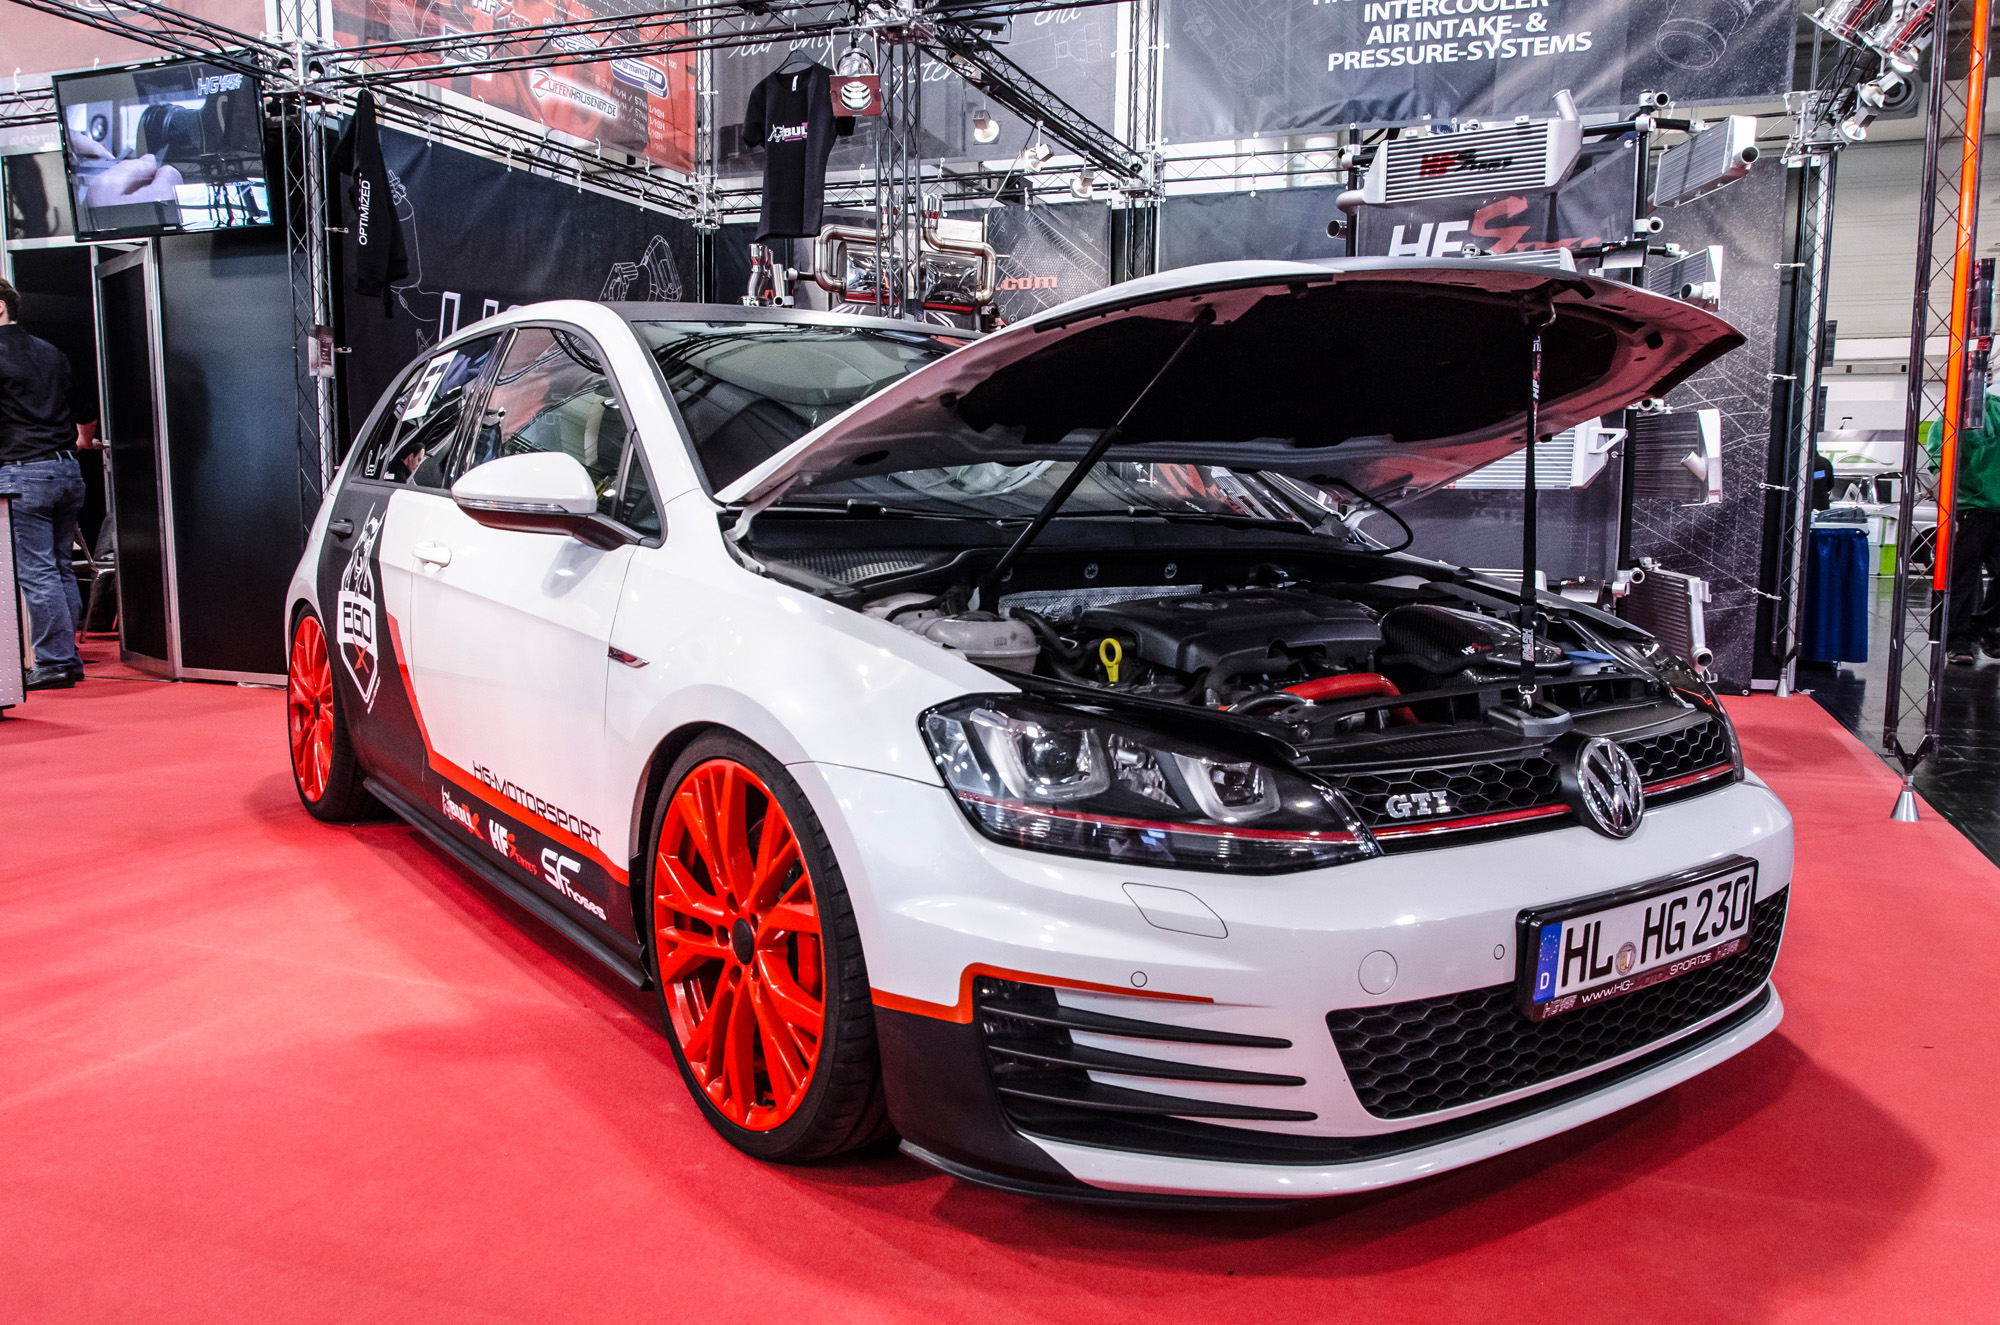 essen-motor-show-2015-preview-day-41